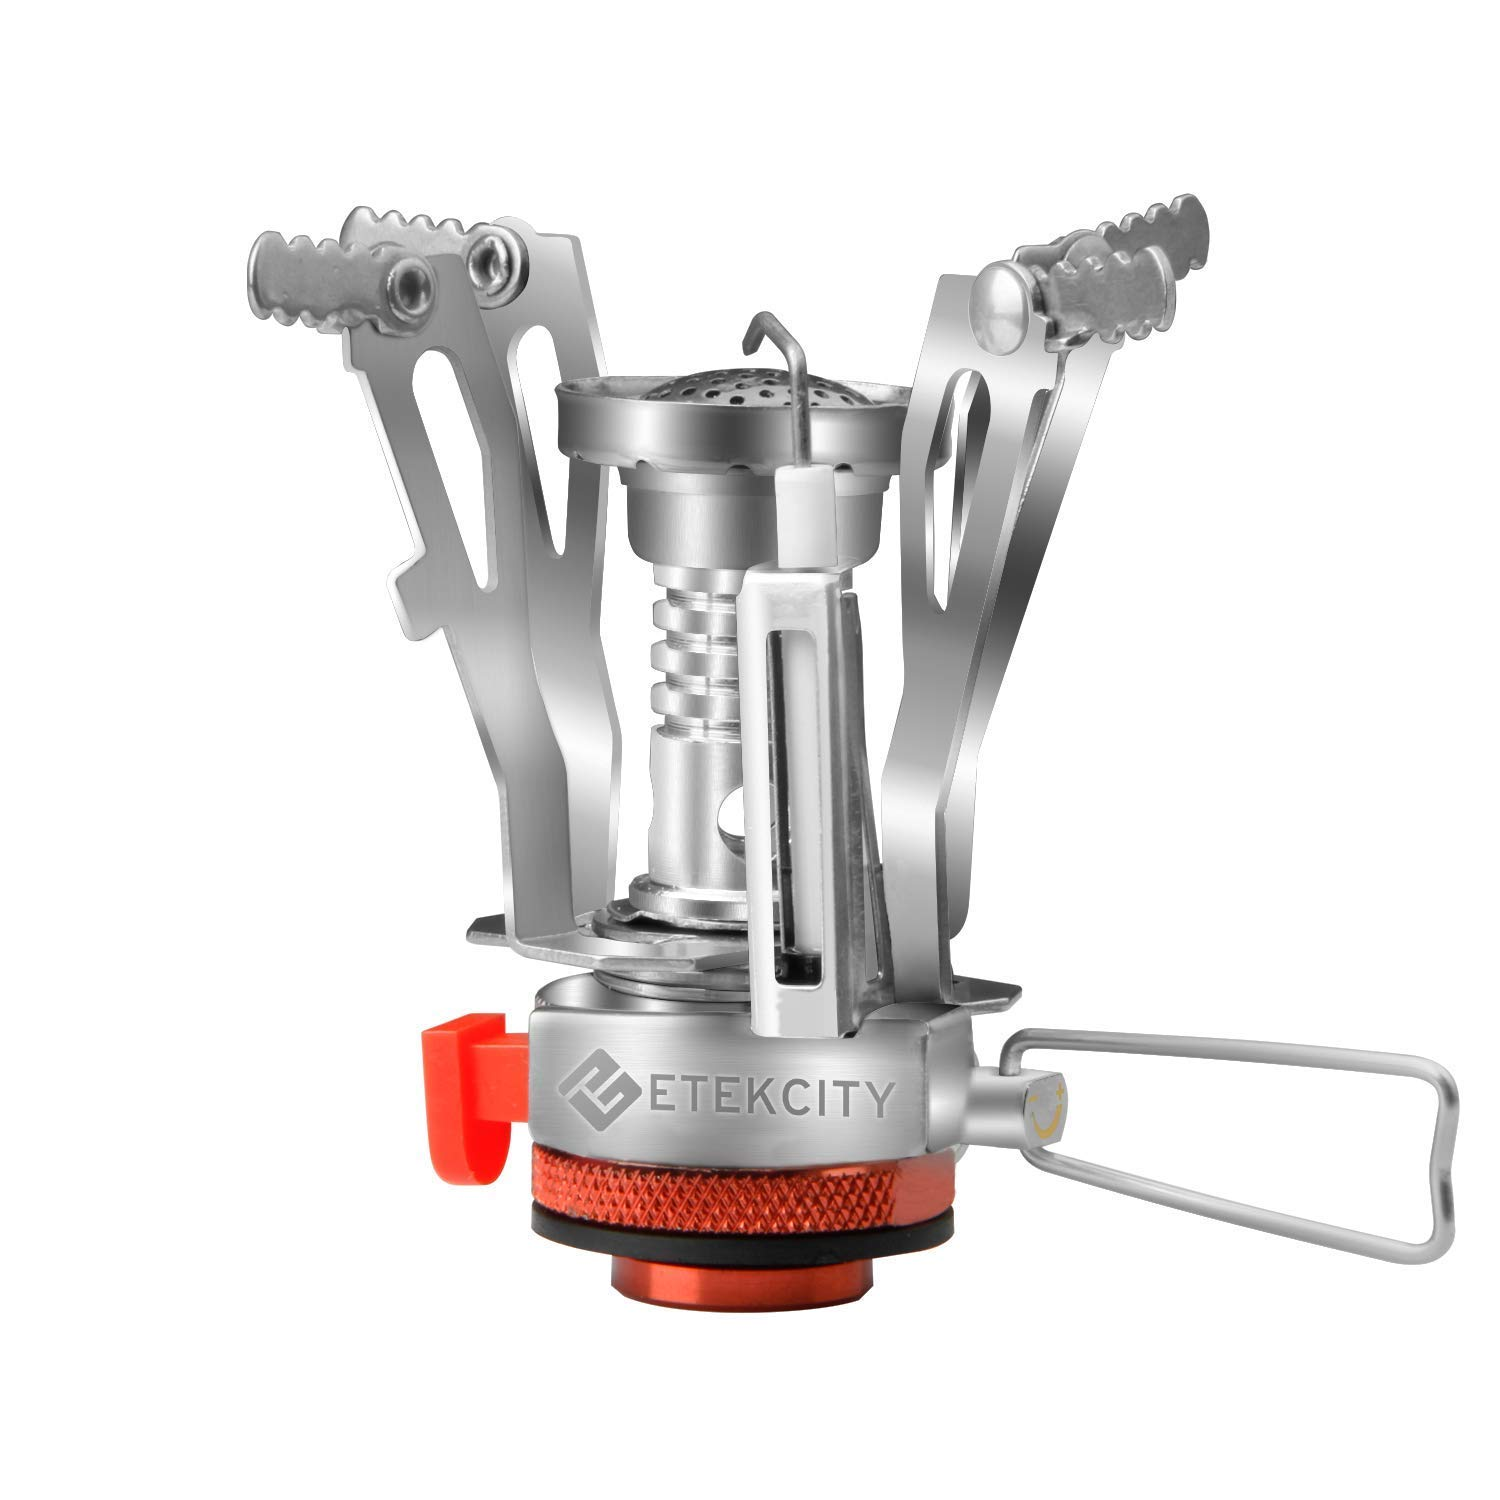 Etekcity Ultralight Portable Outdoor Backpacking Camping Stove with Piezo Ignition (Orange, 1 Pack) by Etekcity